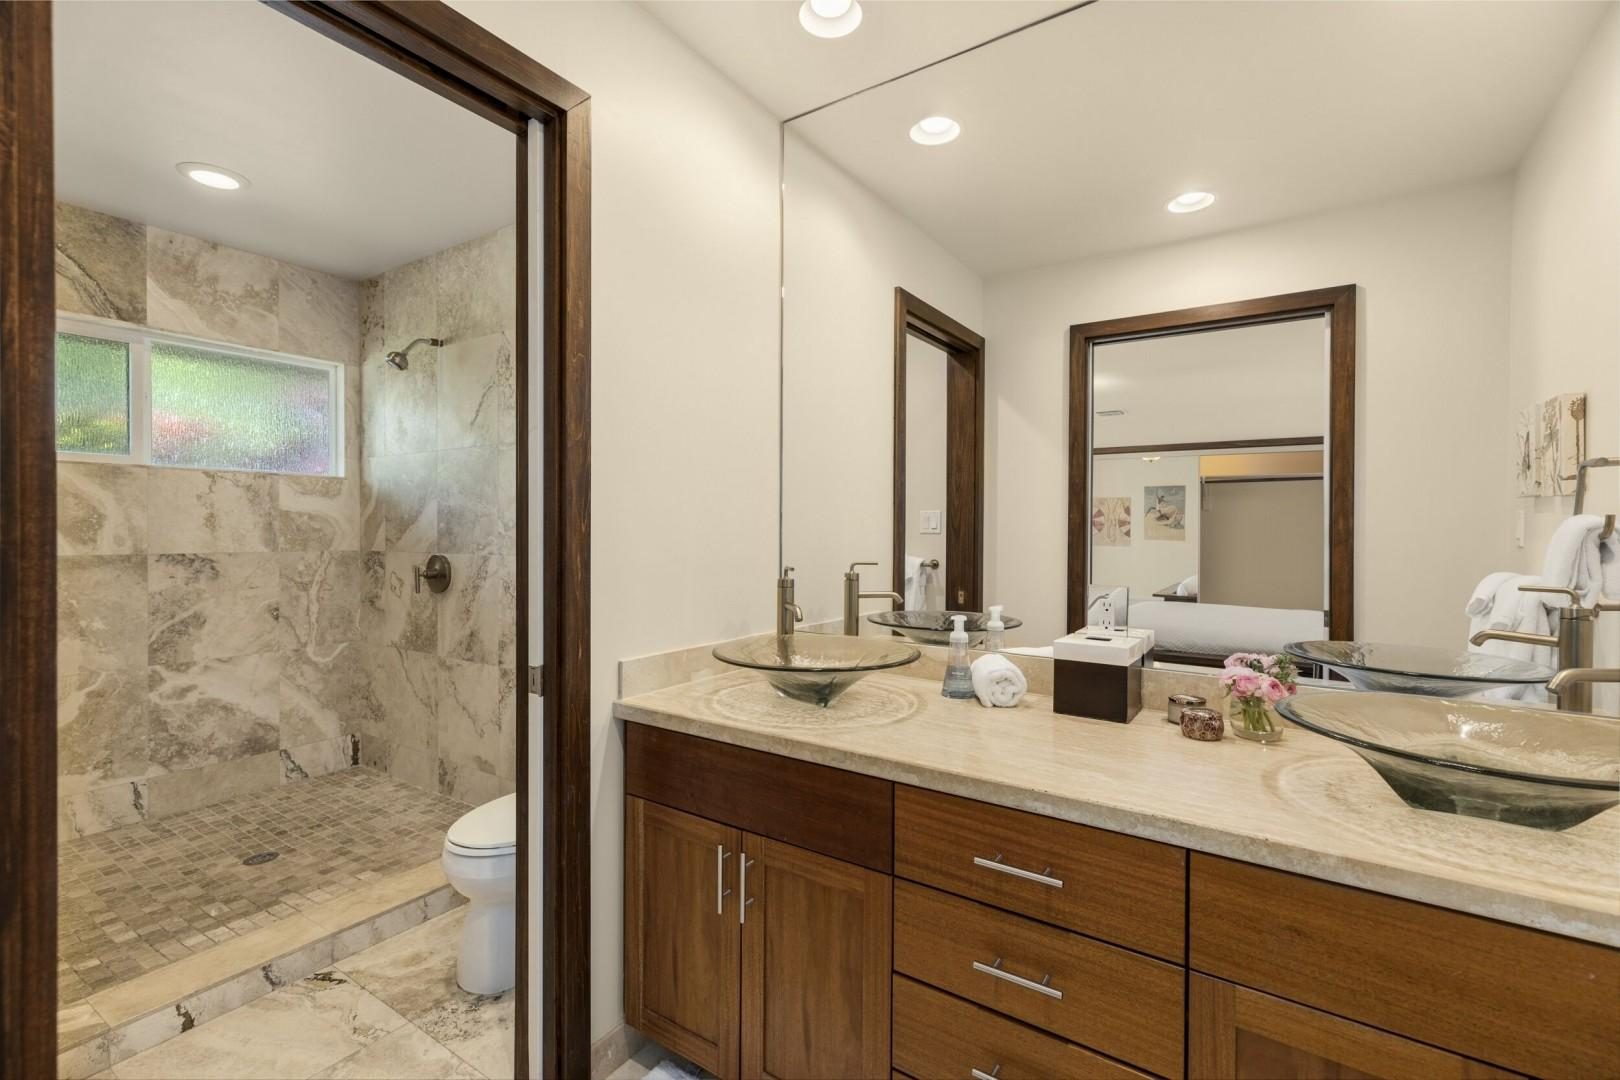 Second master bathroom.